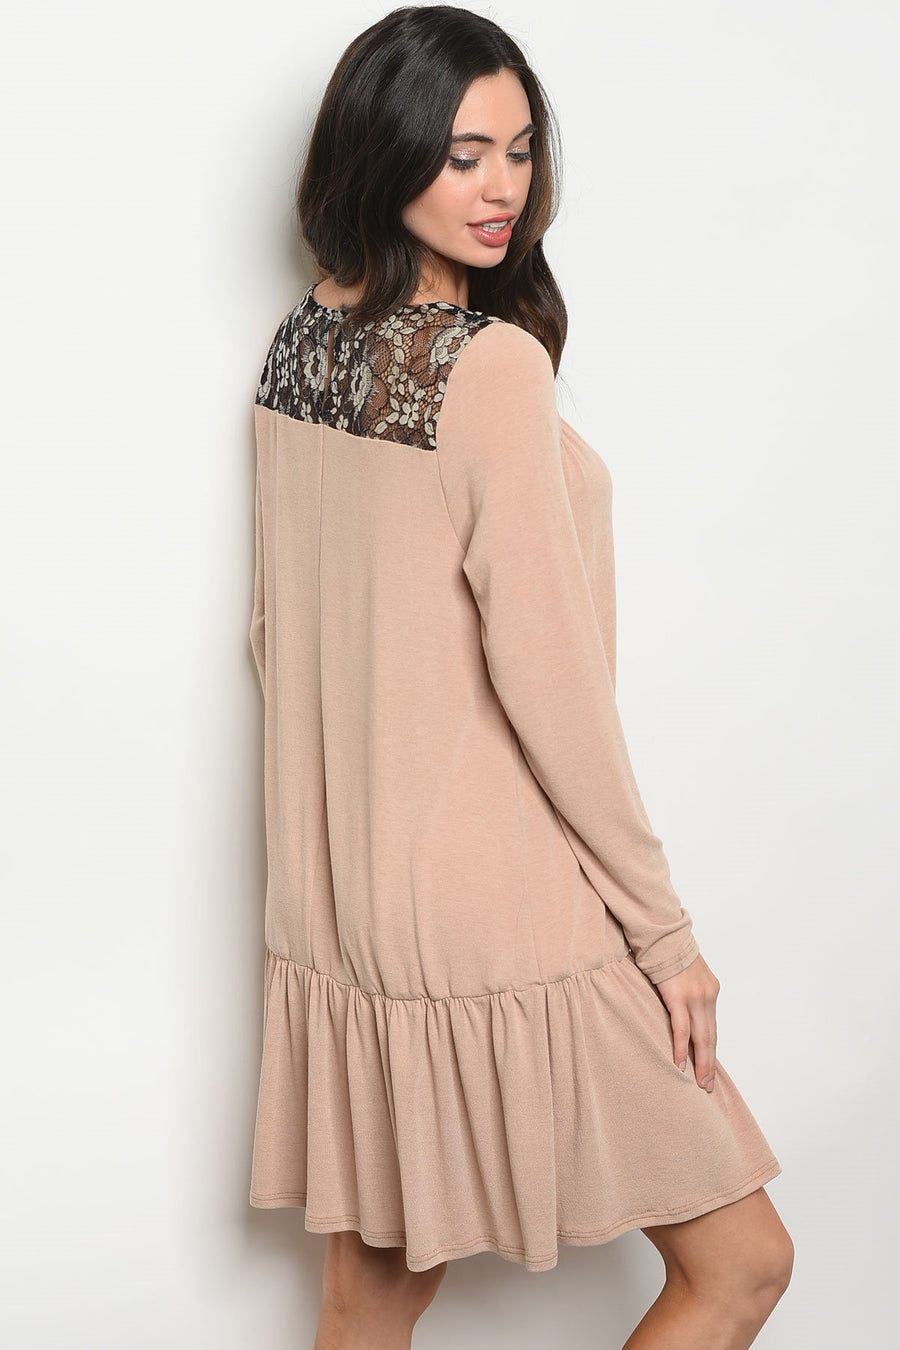 Taupe Dress - TrendyLyfeUSA